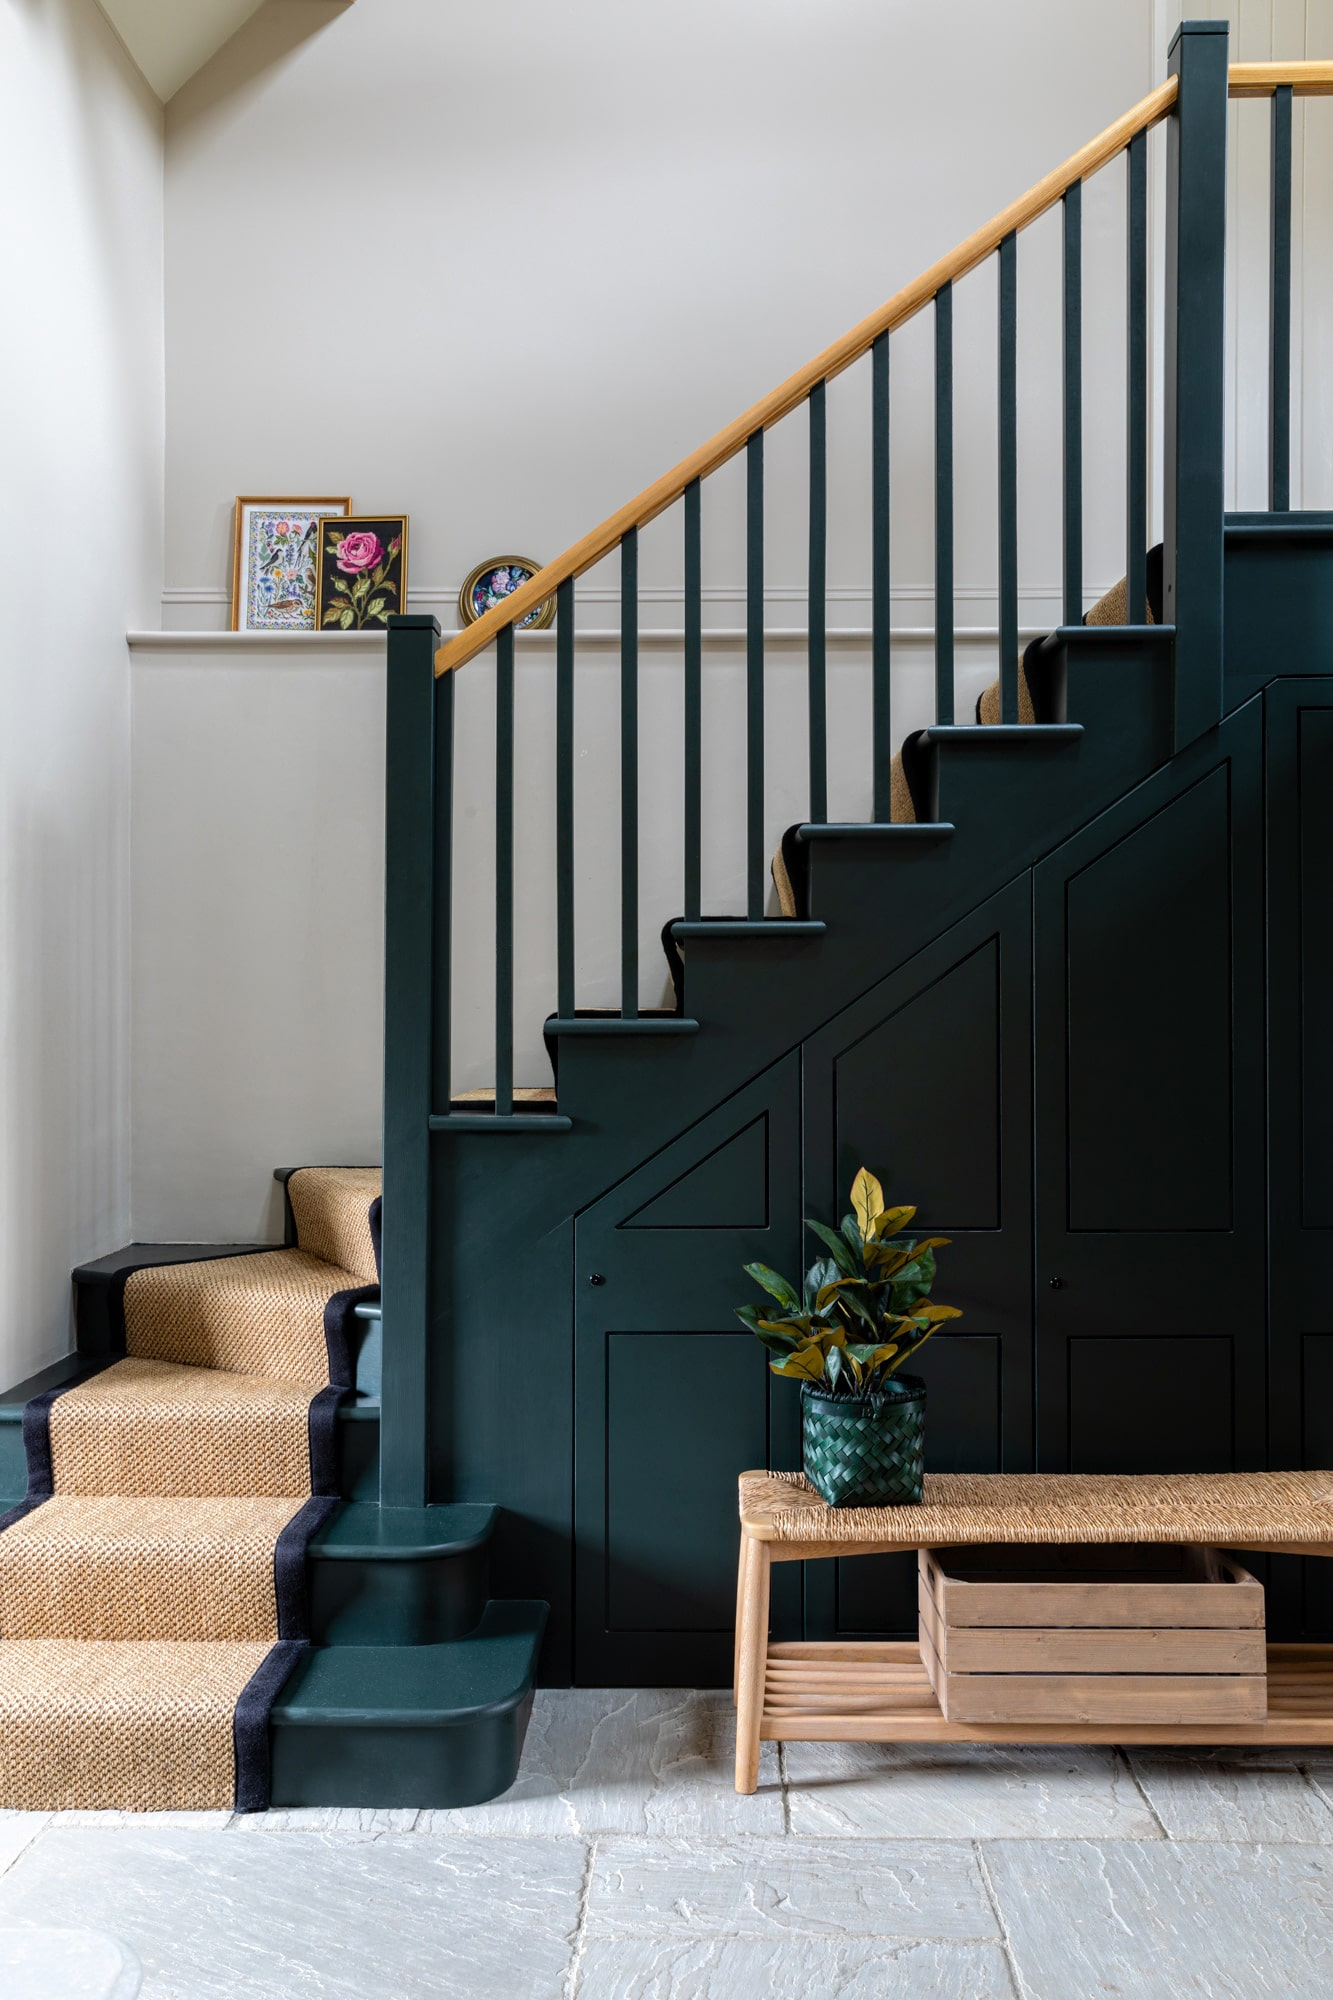 interior photo: dark green staircase with a rattan ranner